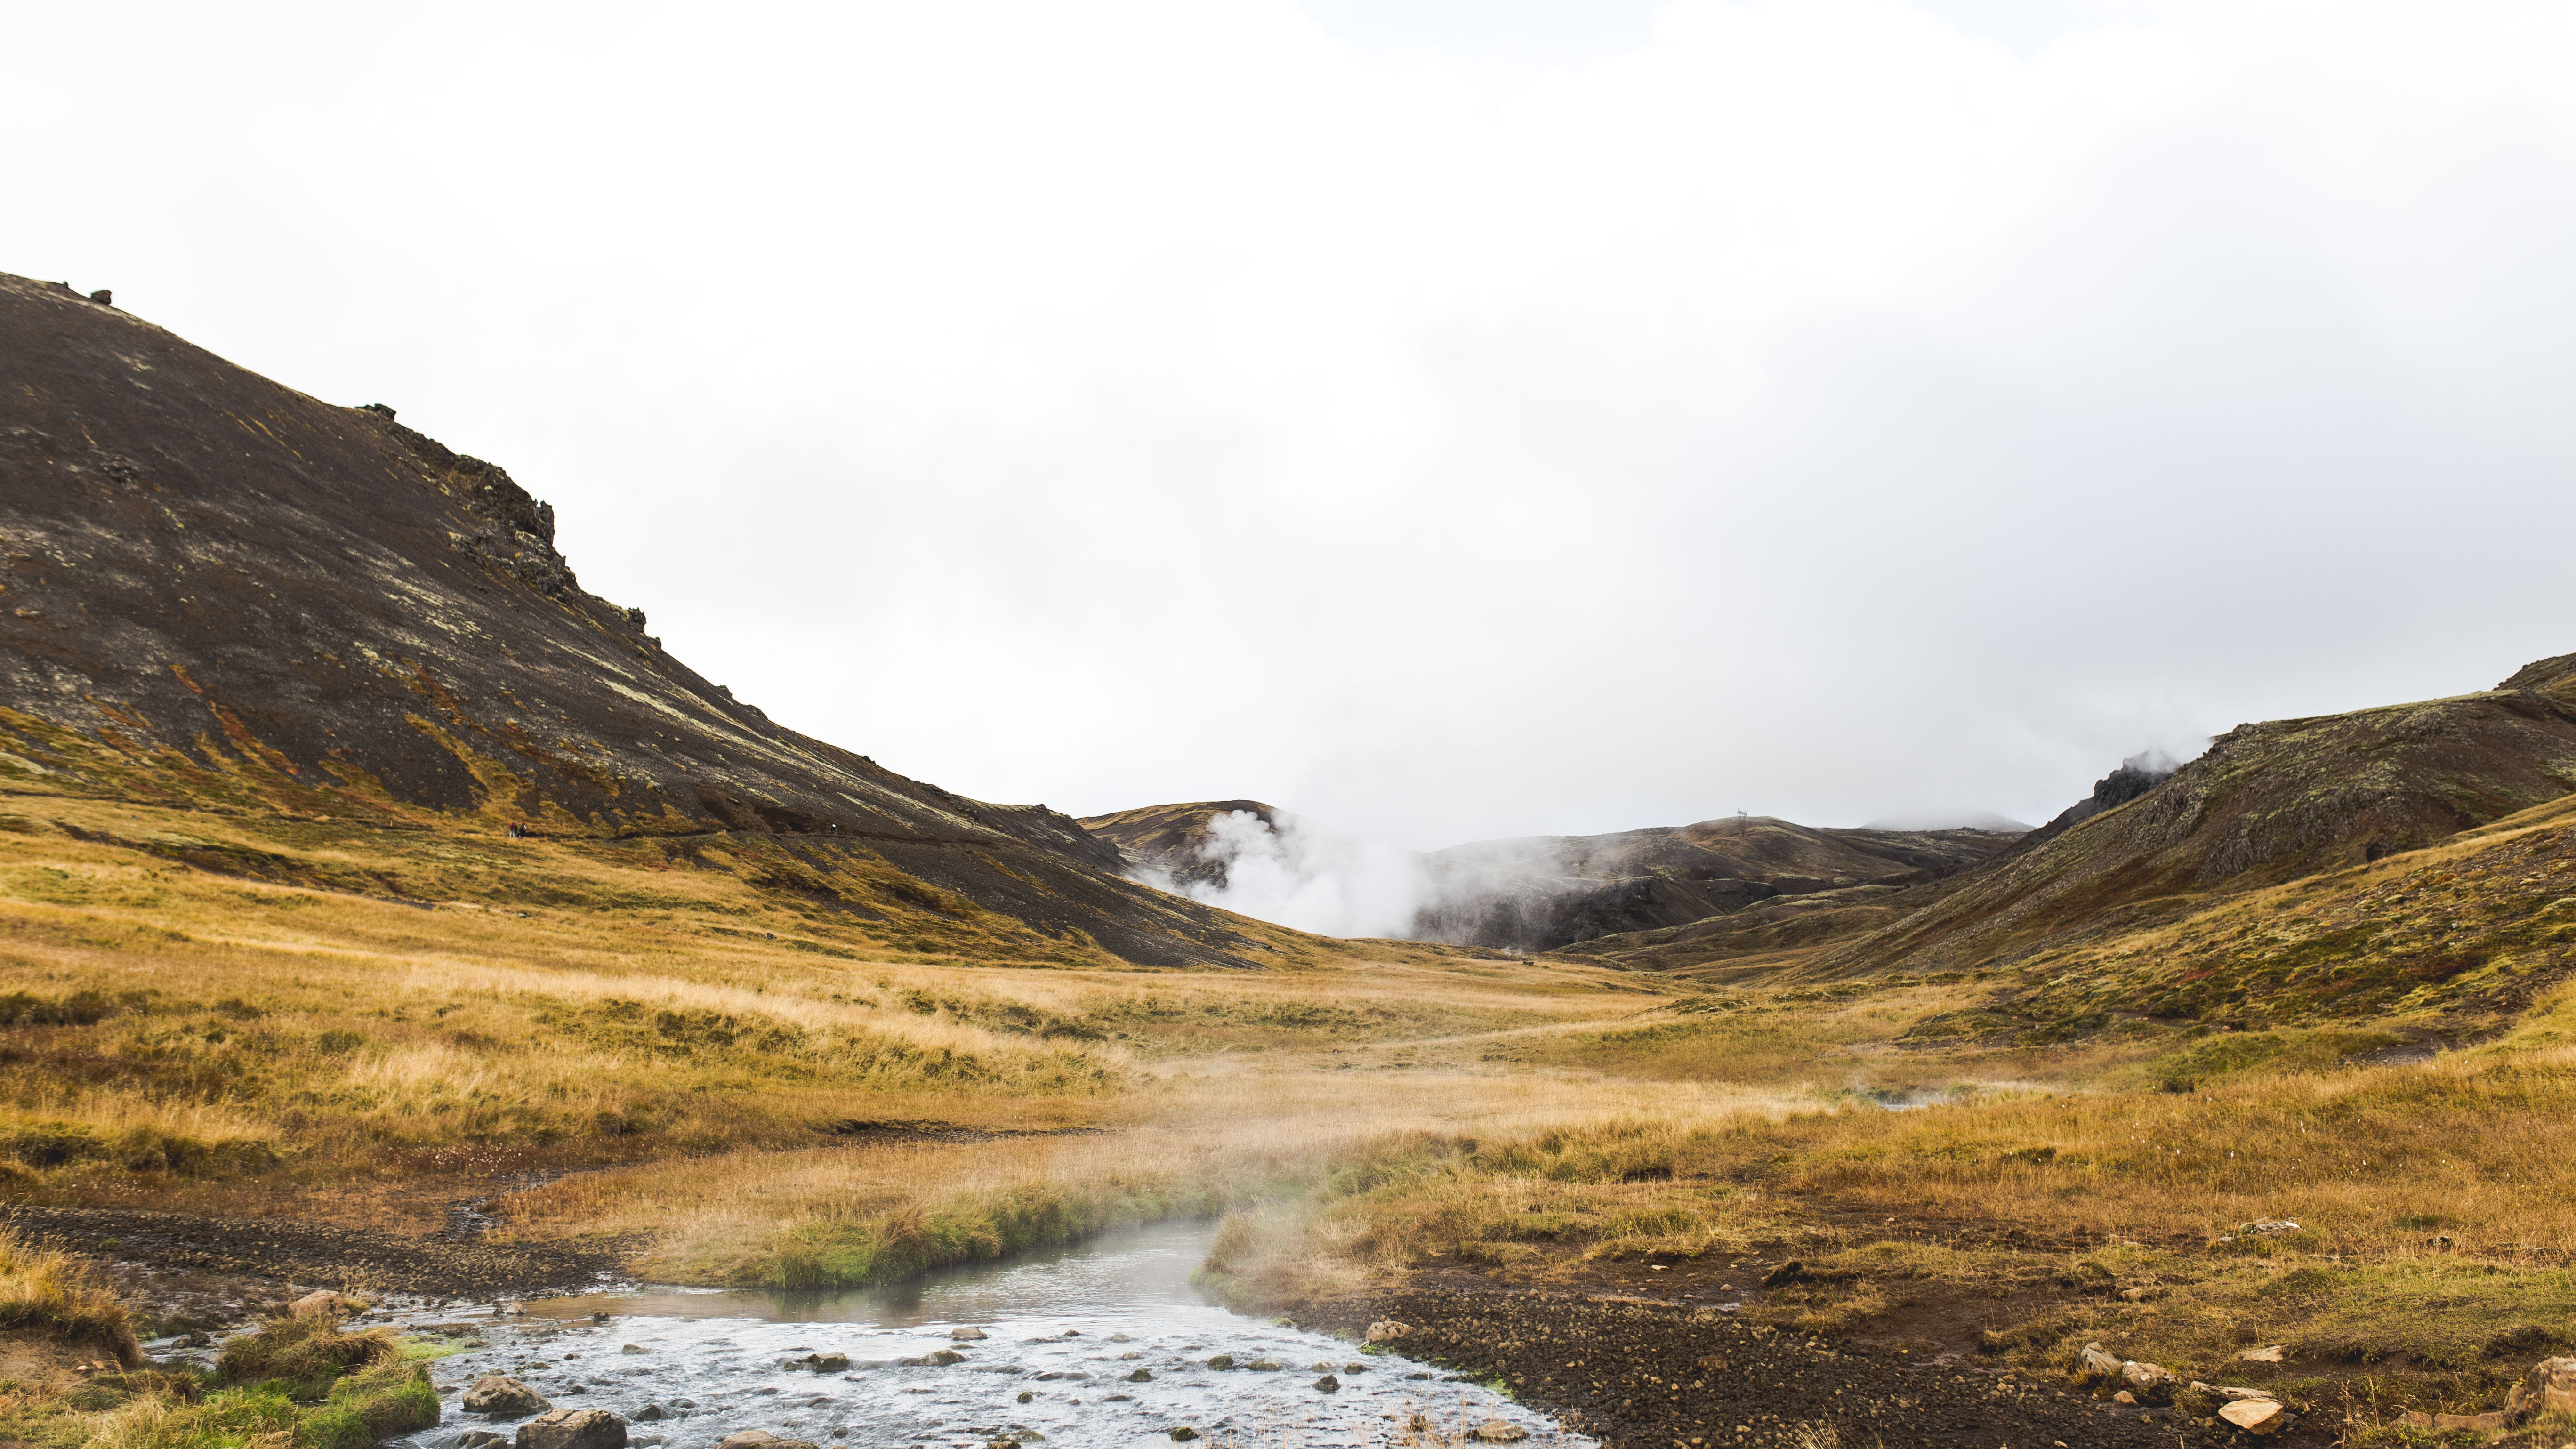 Steam rising up above a cold grassy field surrounded by rocky hills in Iceland